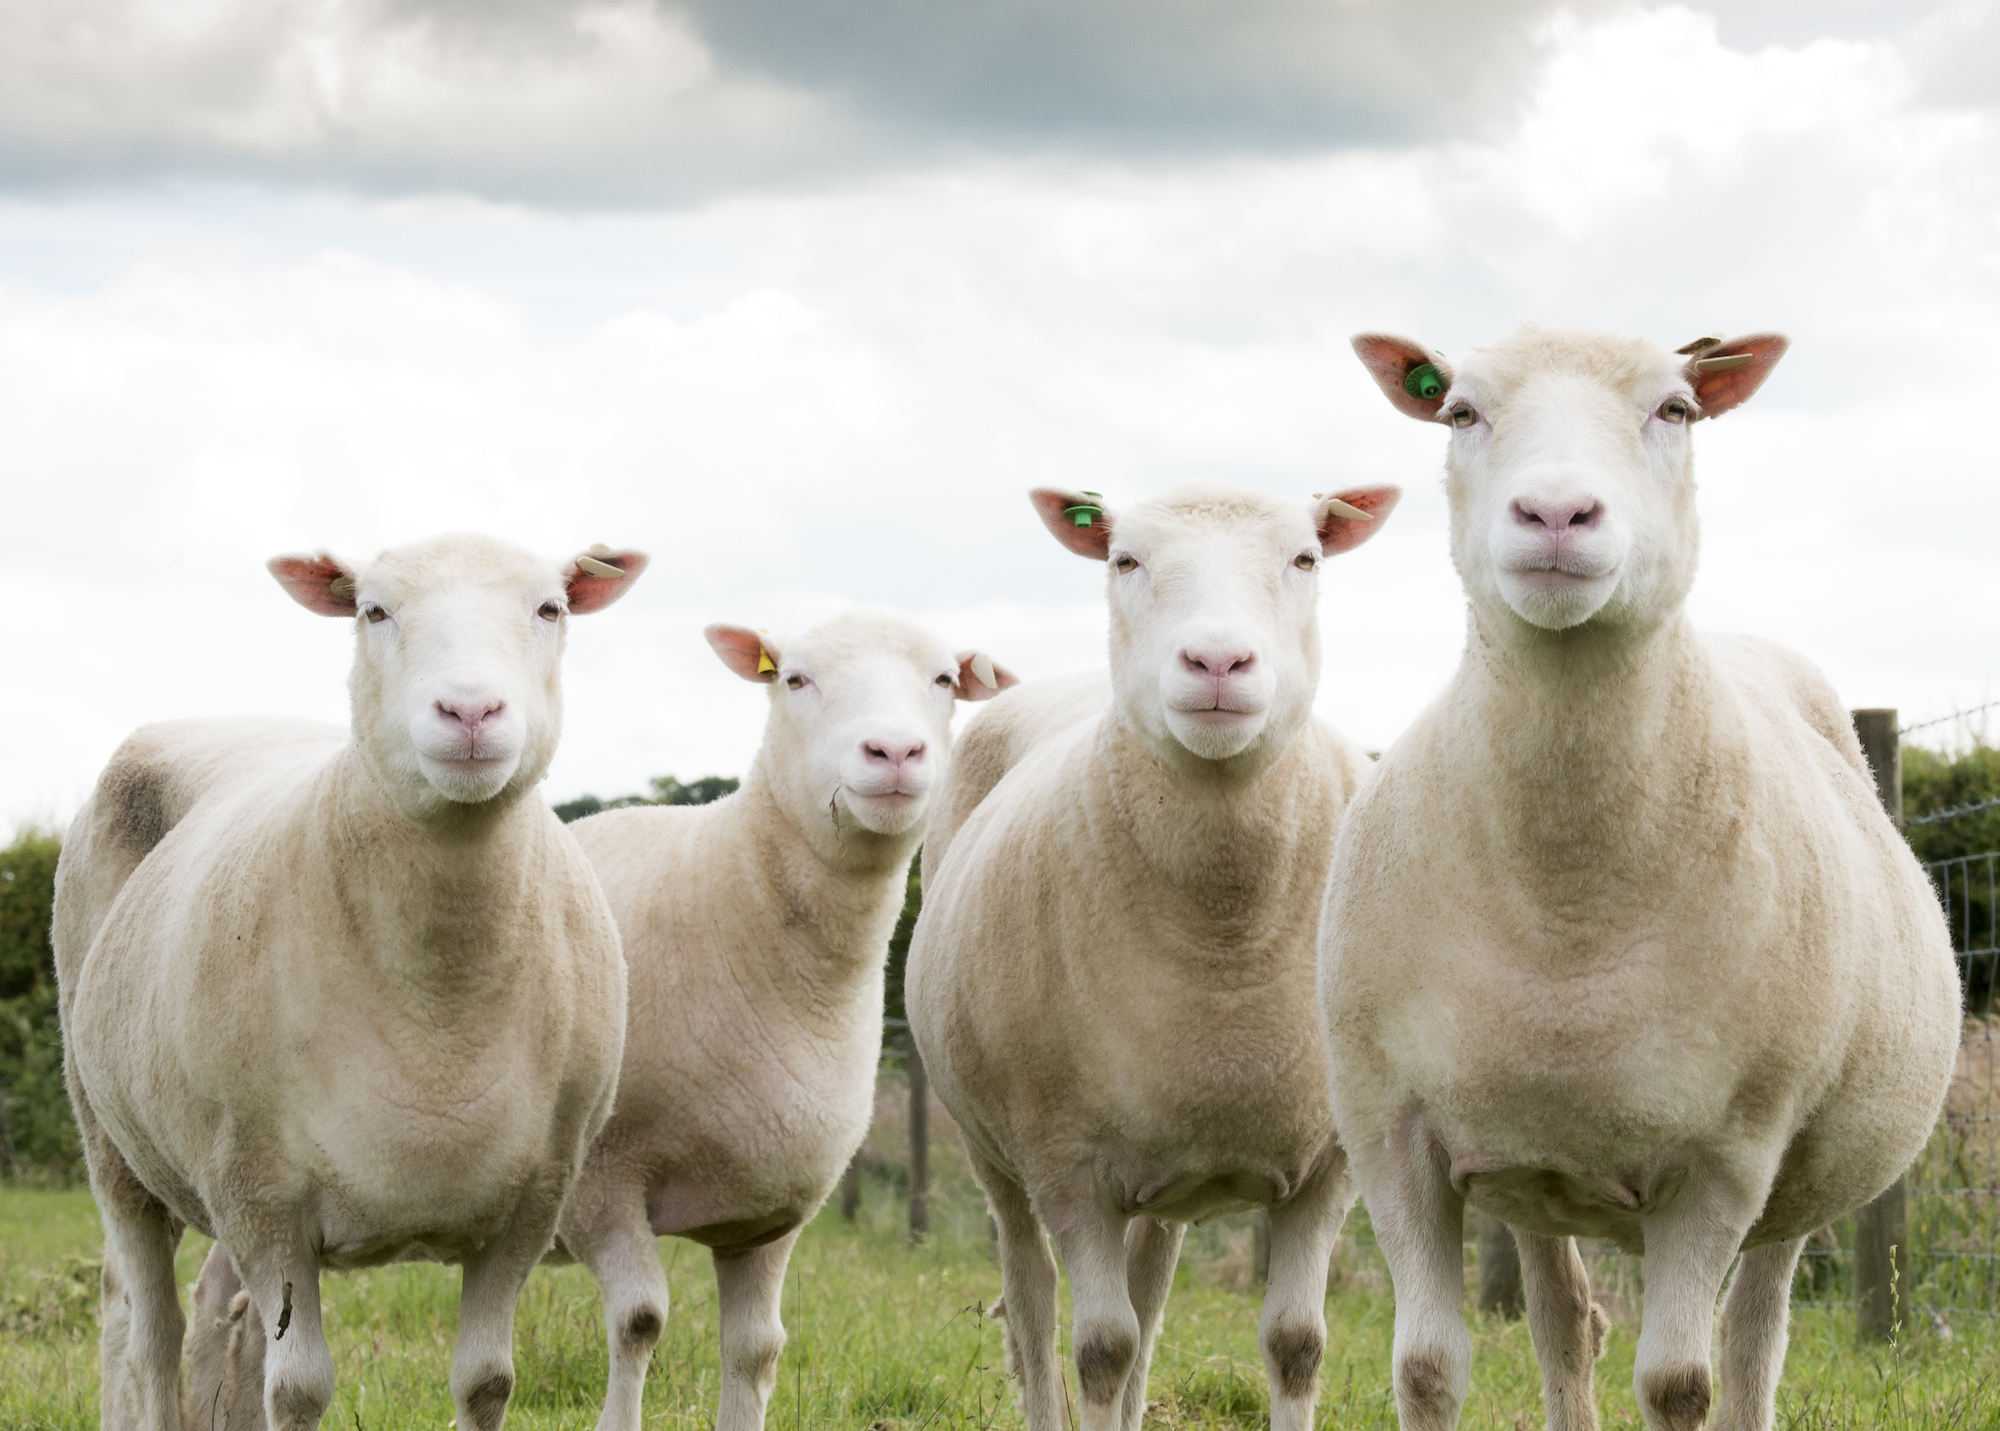 Dolly the Sheep Clones Are